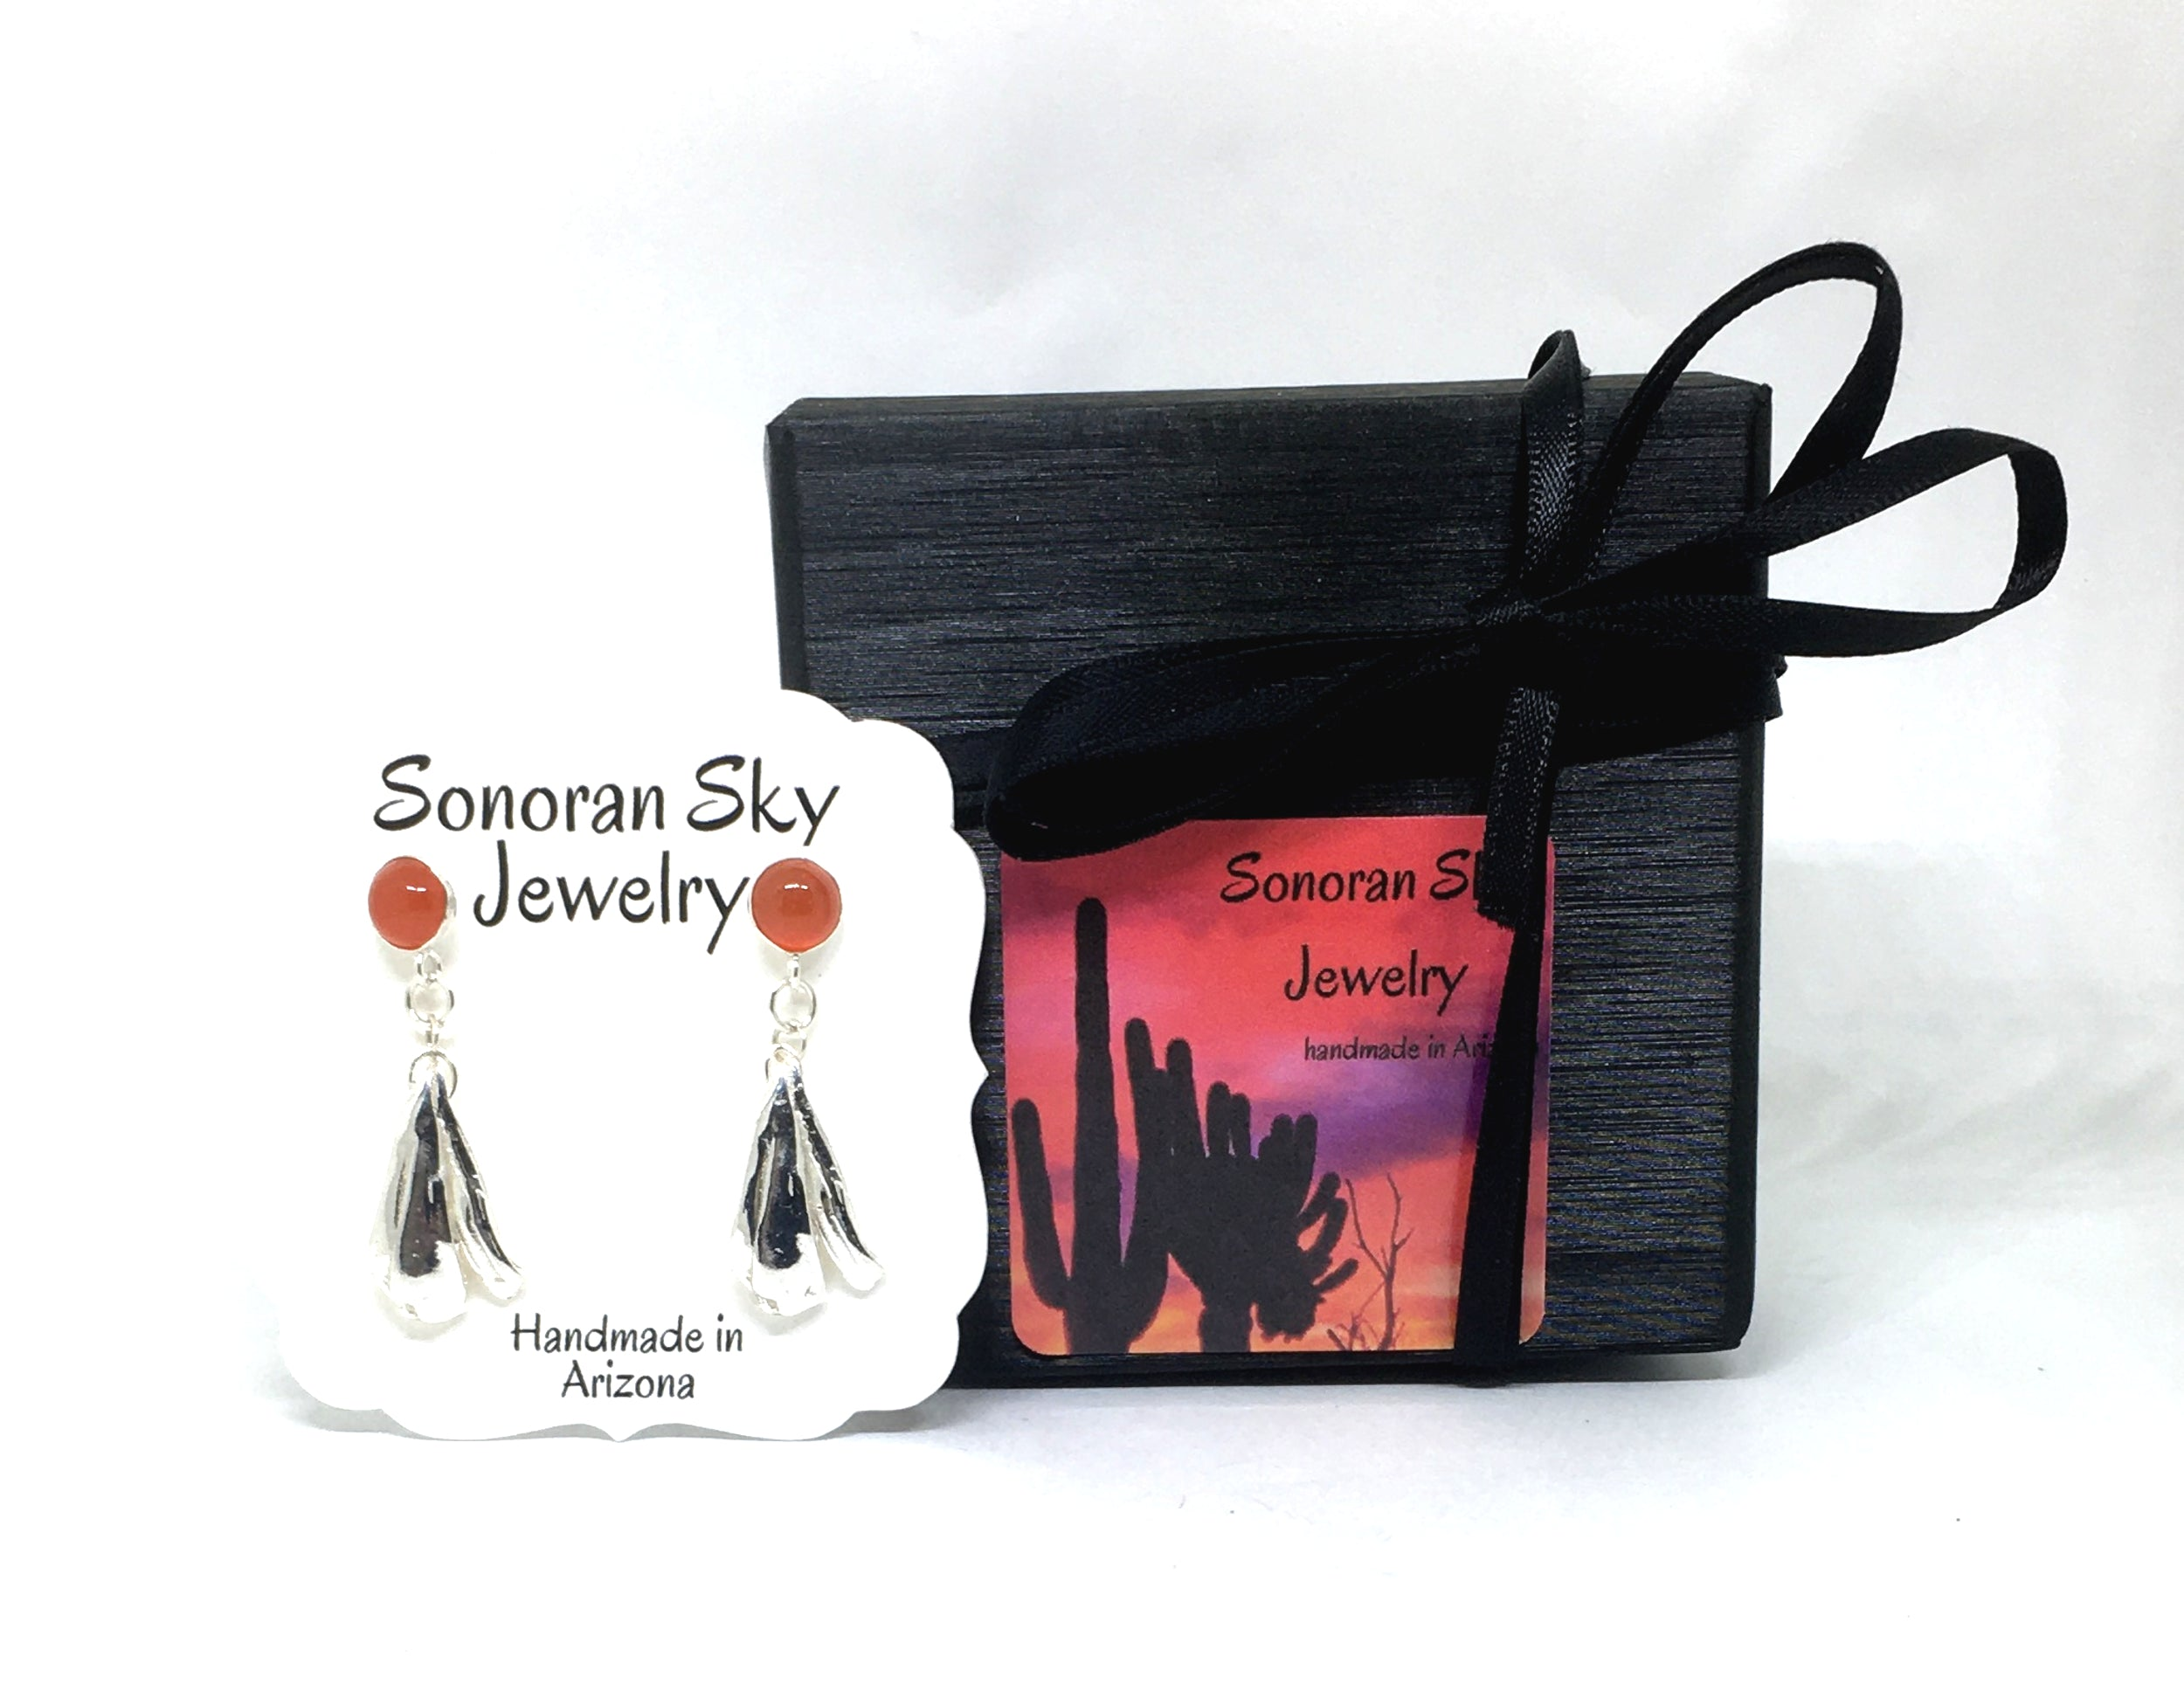 Your sonoran sky jewelry will arrive in a ribbon wrapped gift box.